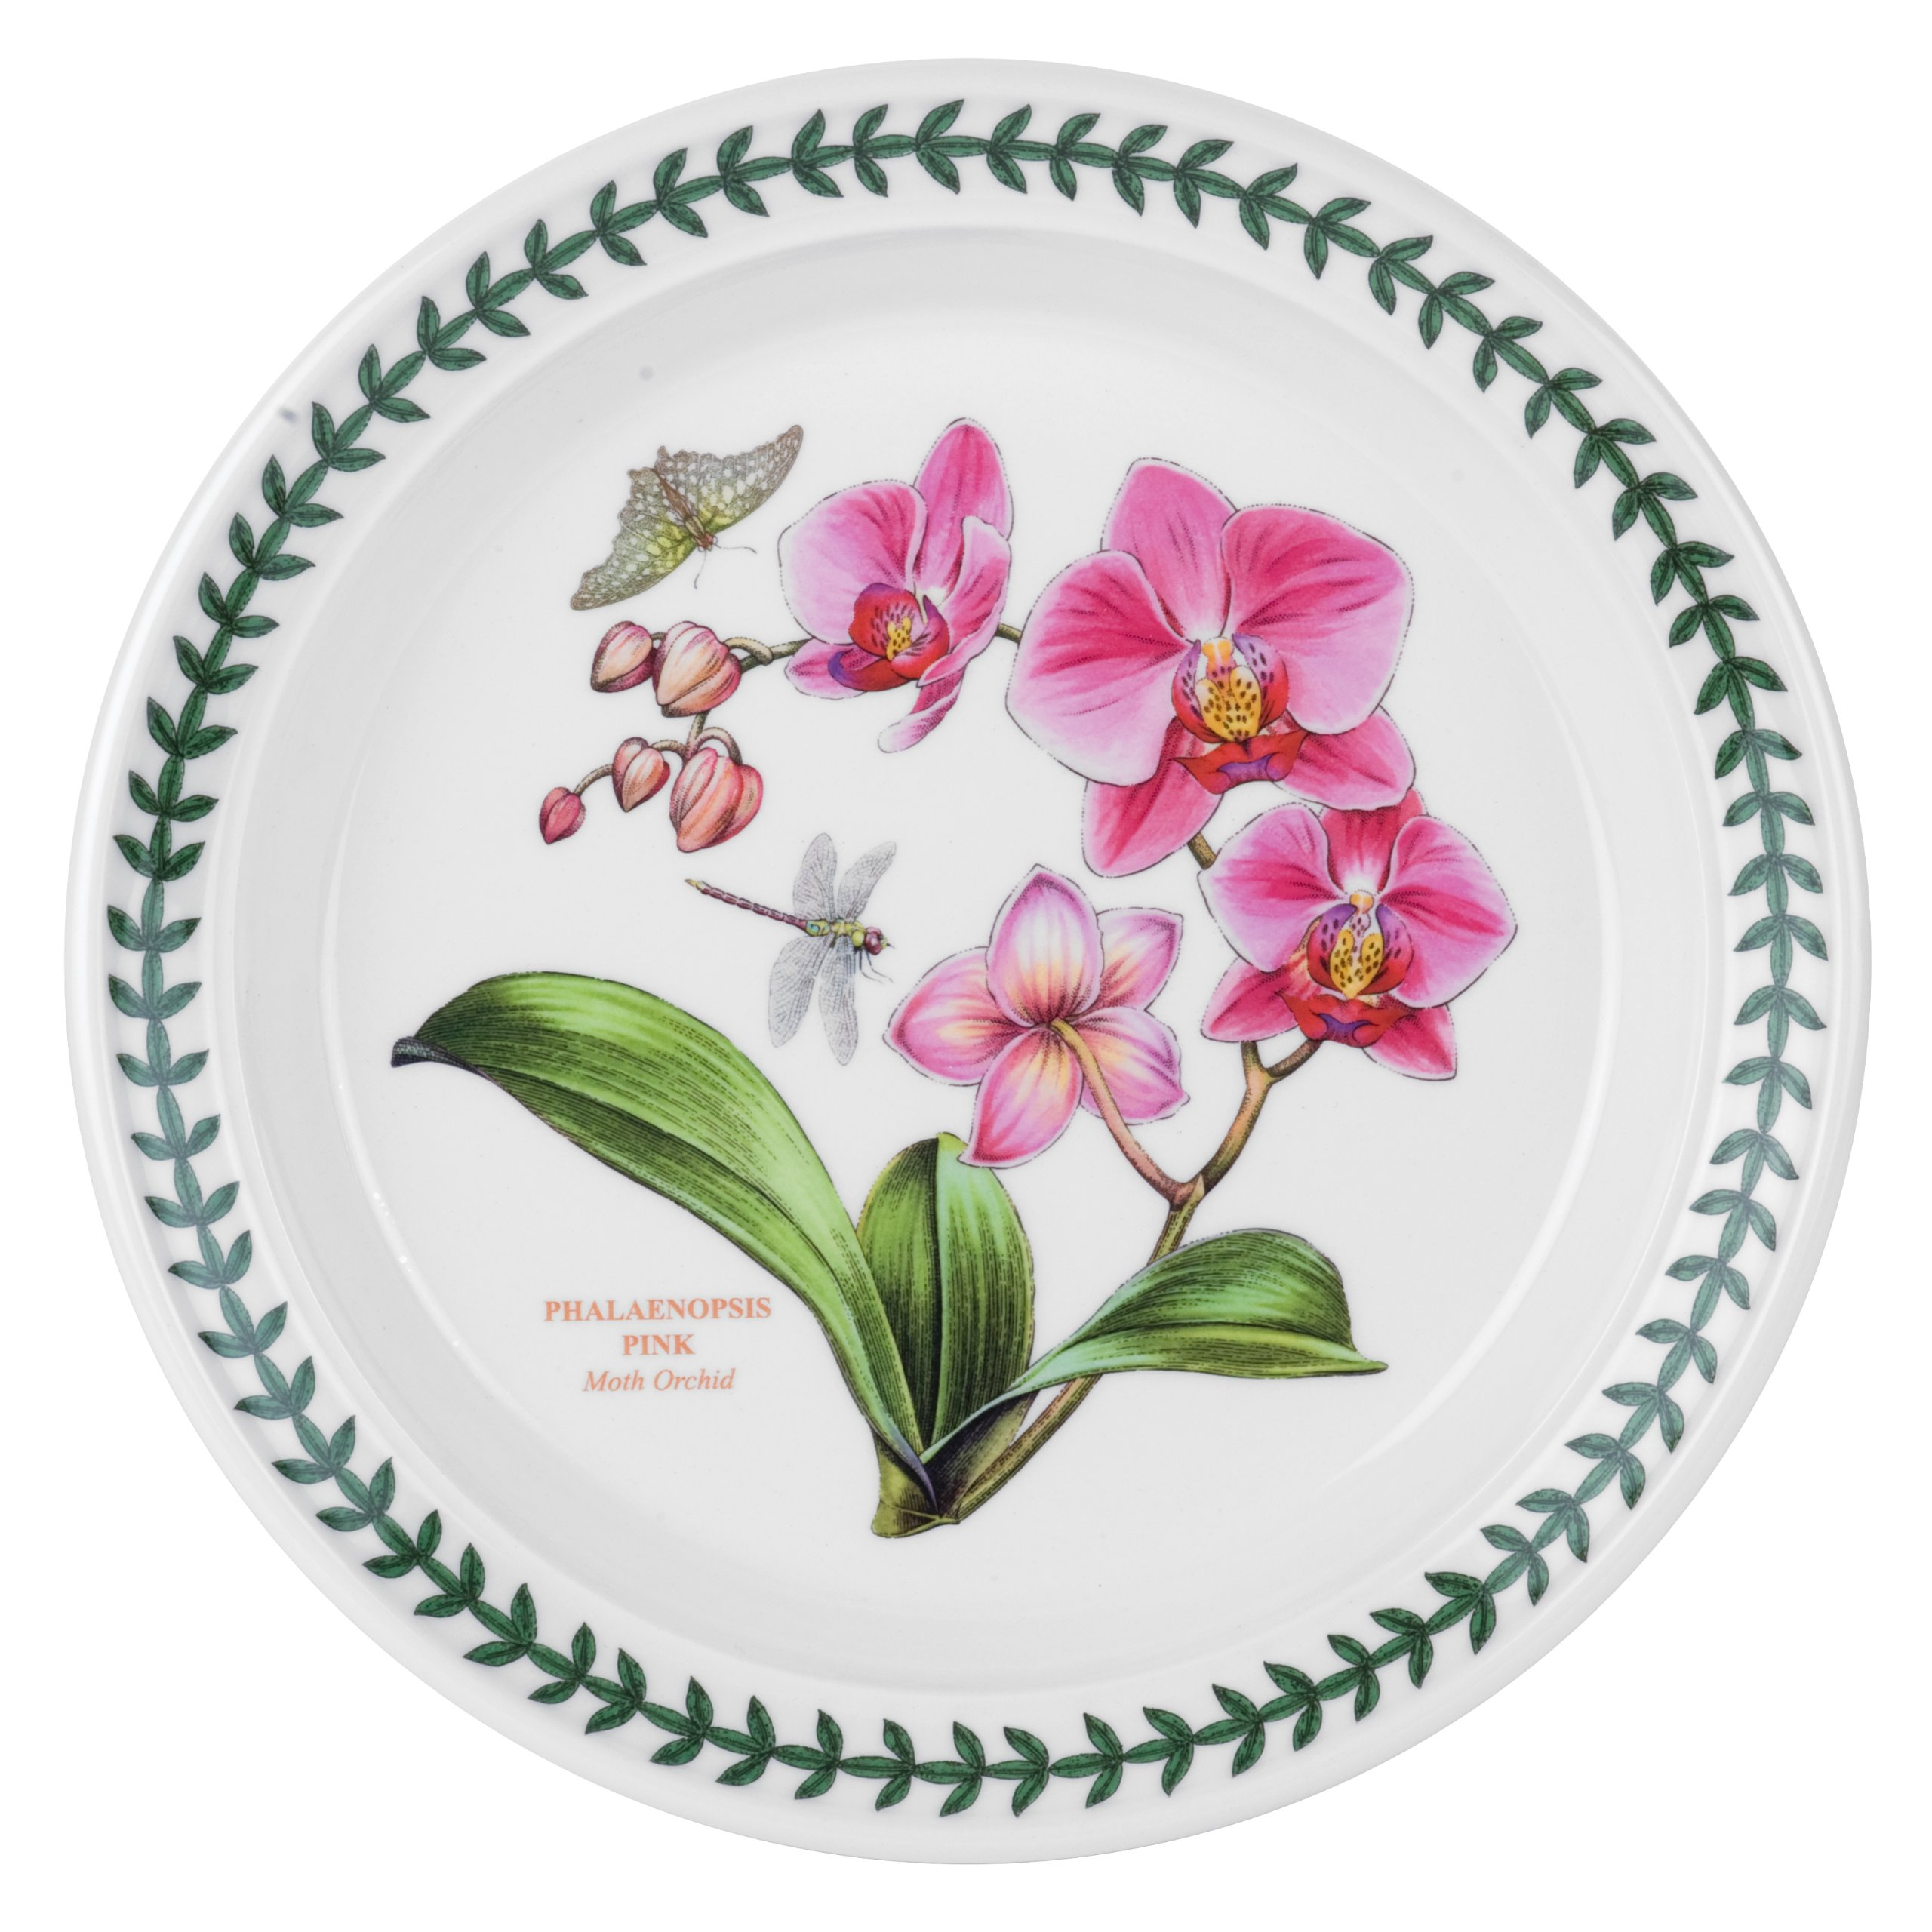 Portmeirion Exotic Botanic Garden Salad Plate with Orchid Motif, Set of 6 by Portmeirion